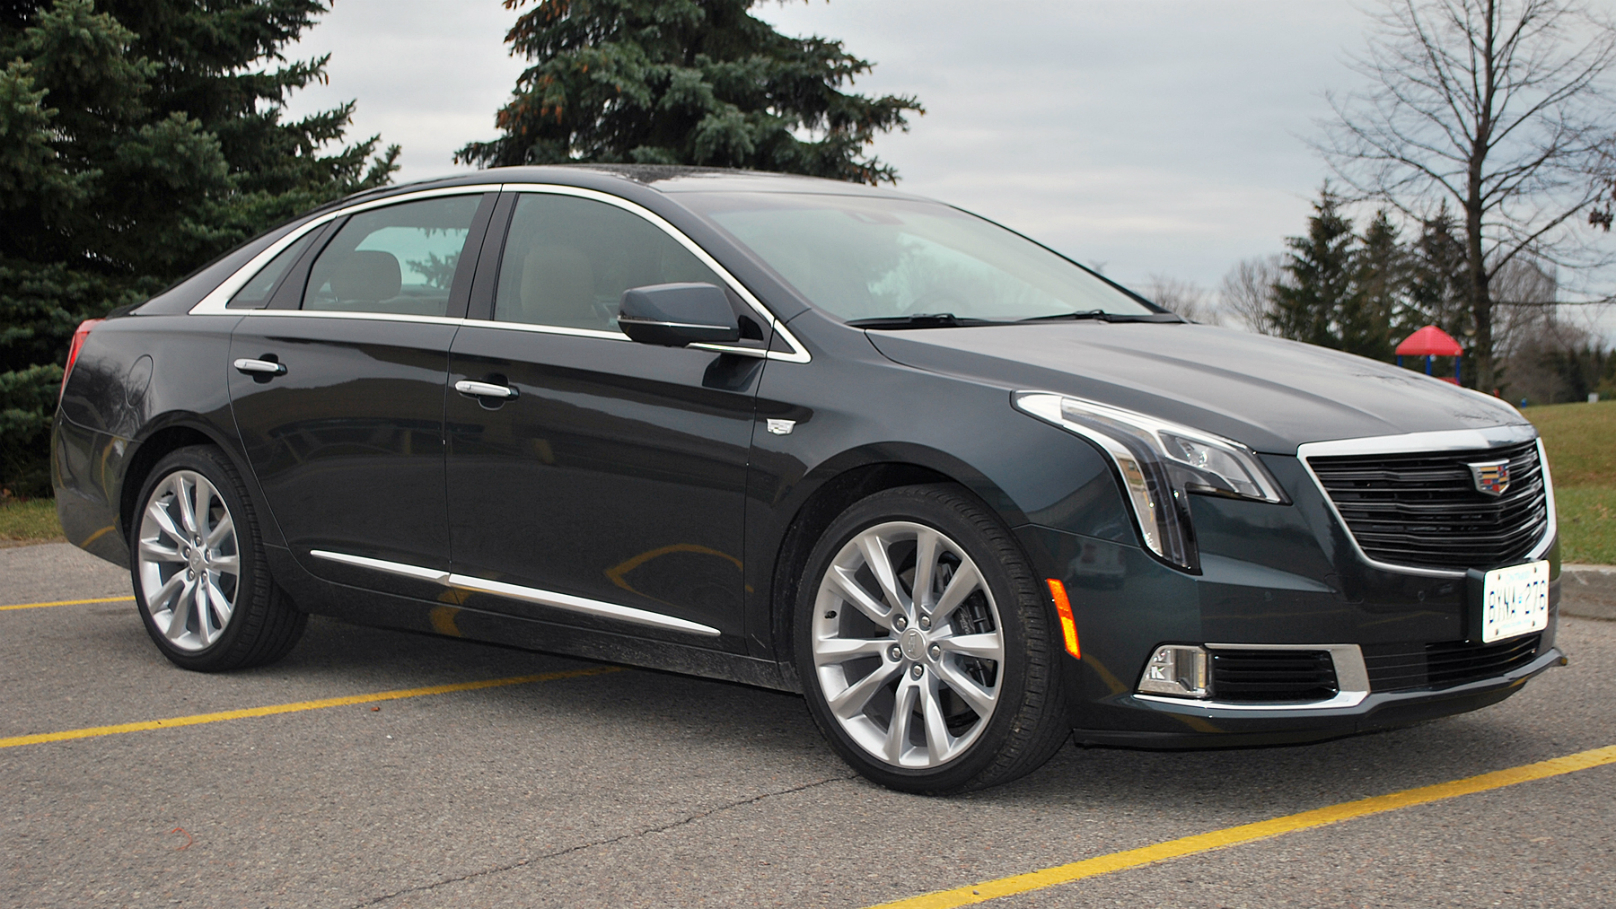 100 2018 cadillac xts color new 2018 cadillac xts luxury 4d sedan in vernon w7483. Black Bedroom Furniture Sets. Home Design Ideas